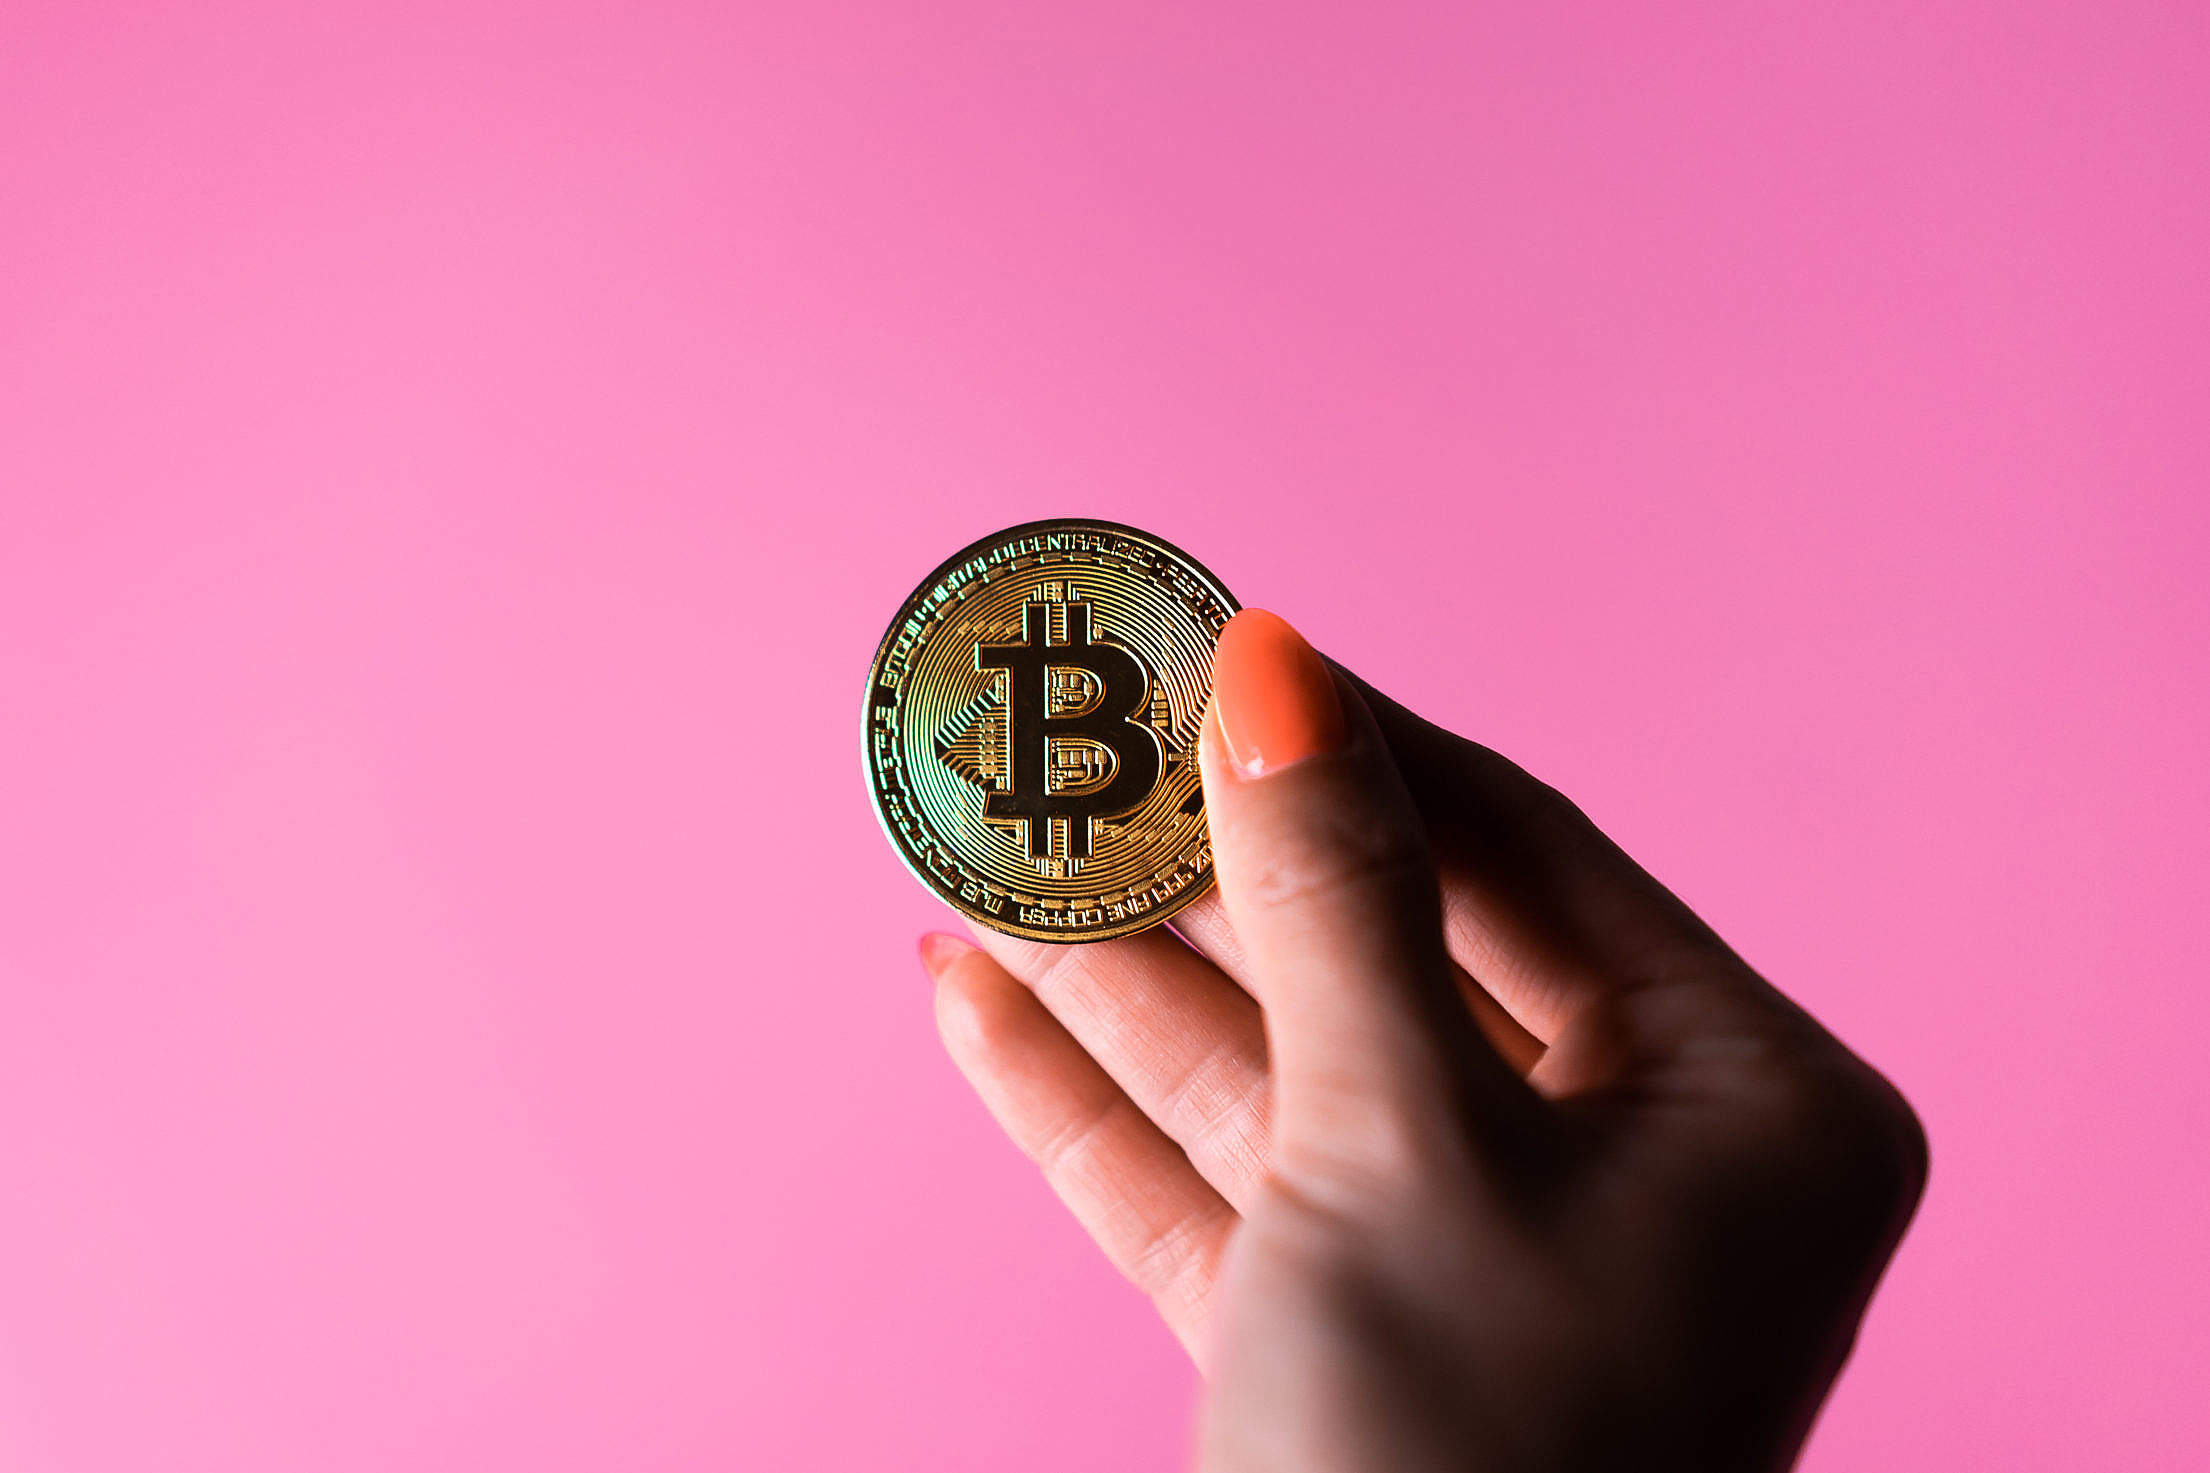 Female Hand Holding a Bitcoin on a Pink Background Free Stock Photo